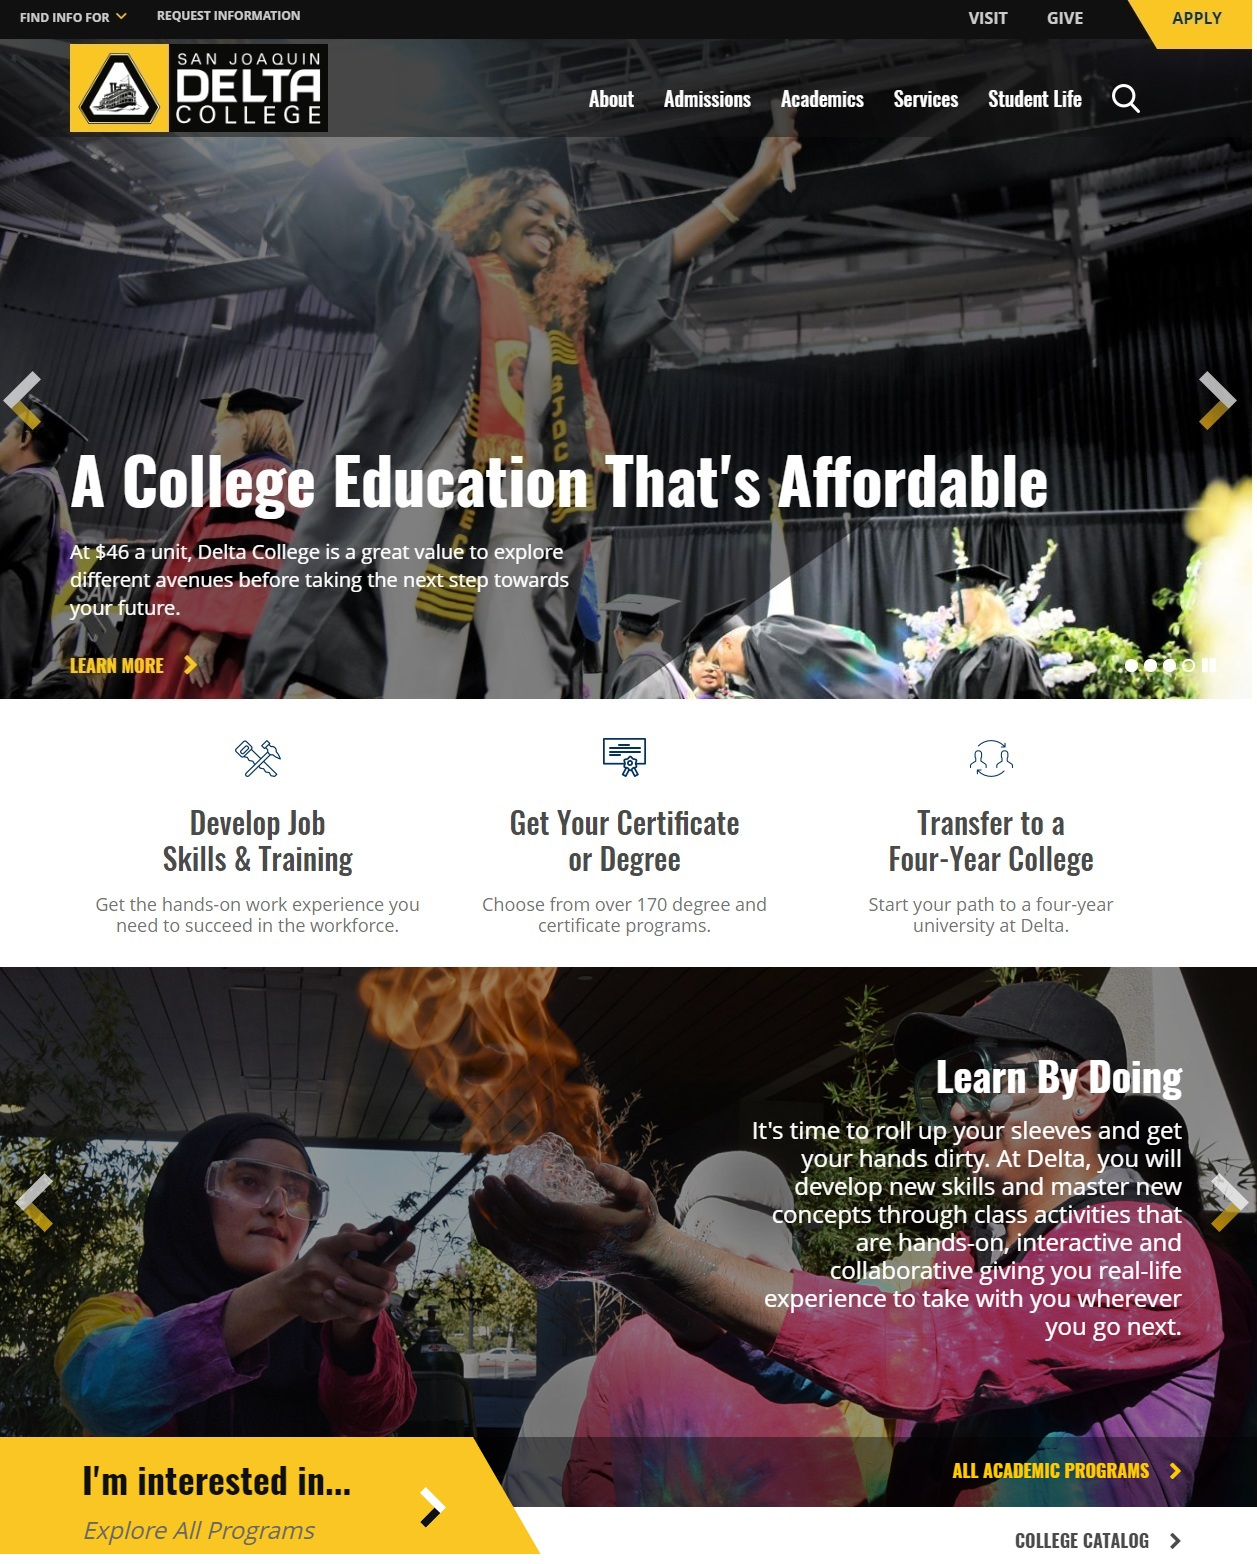 San Joaquin Delta College has launched a new website at www.deltacollege.edu